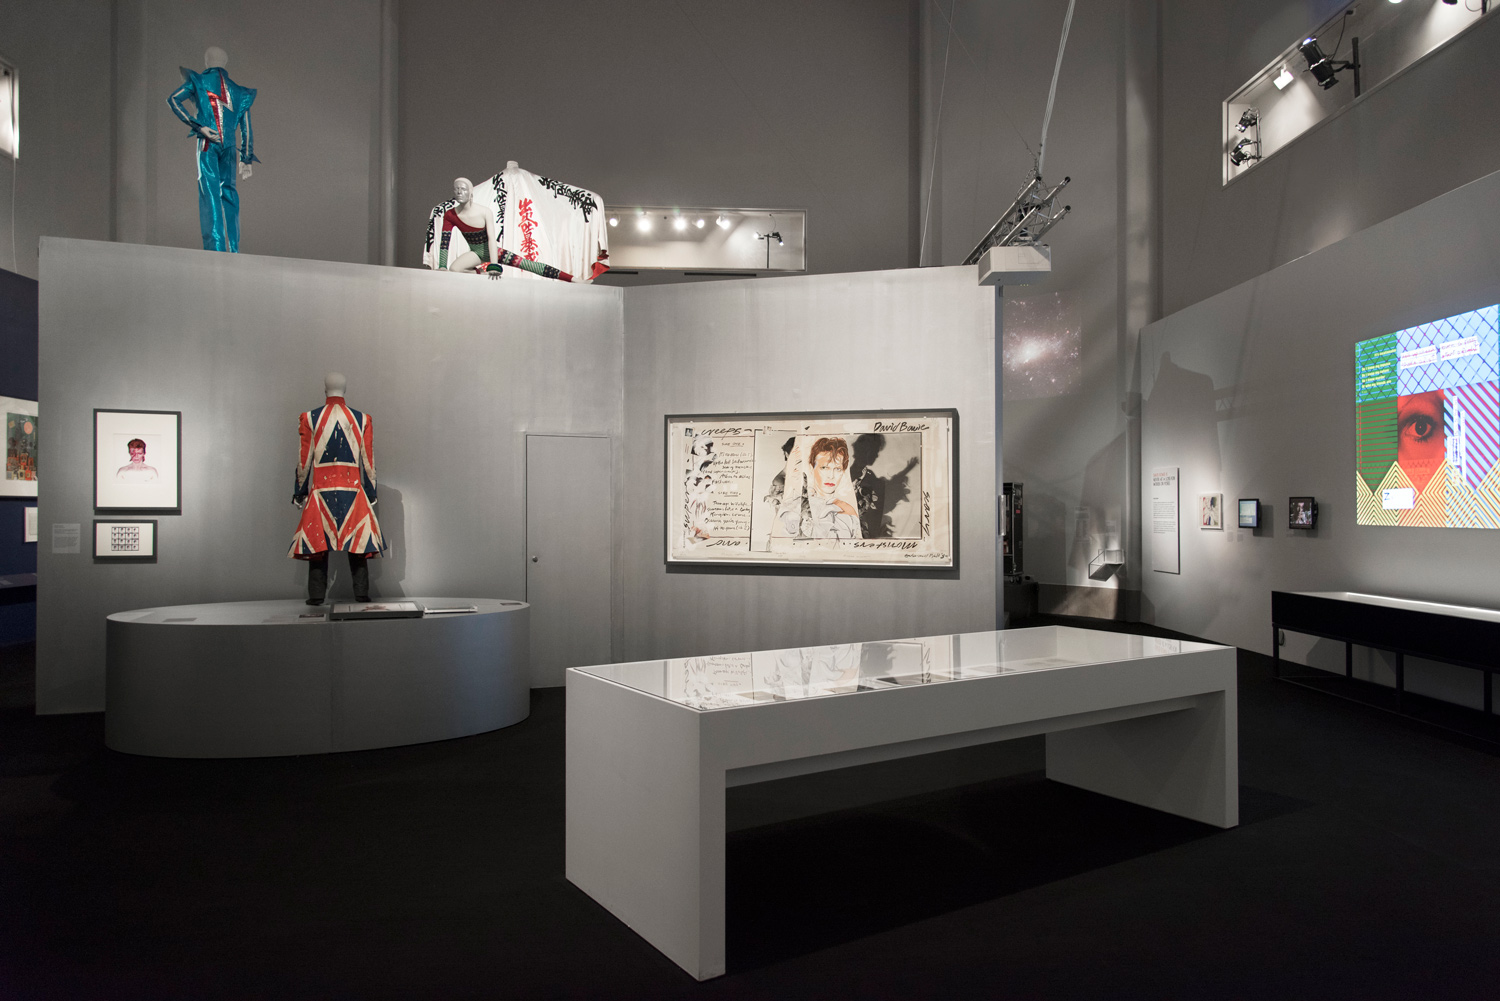 How to become an exhibition designer